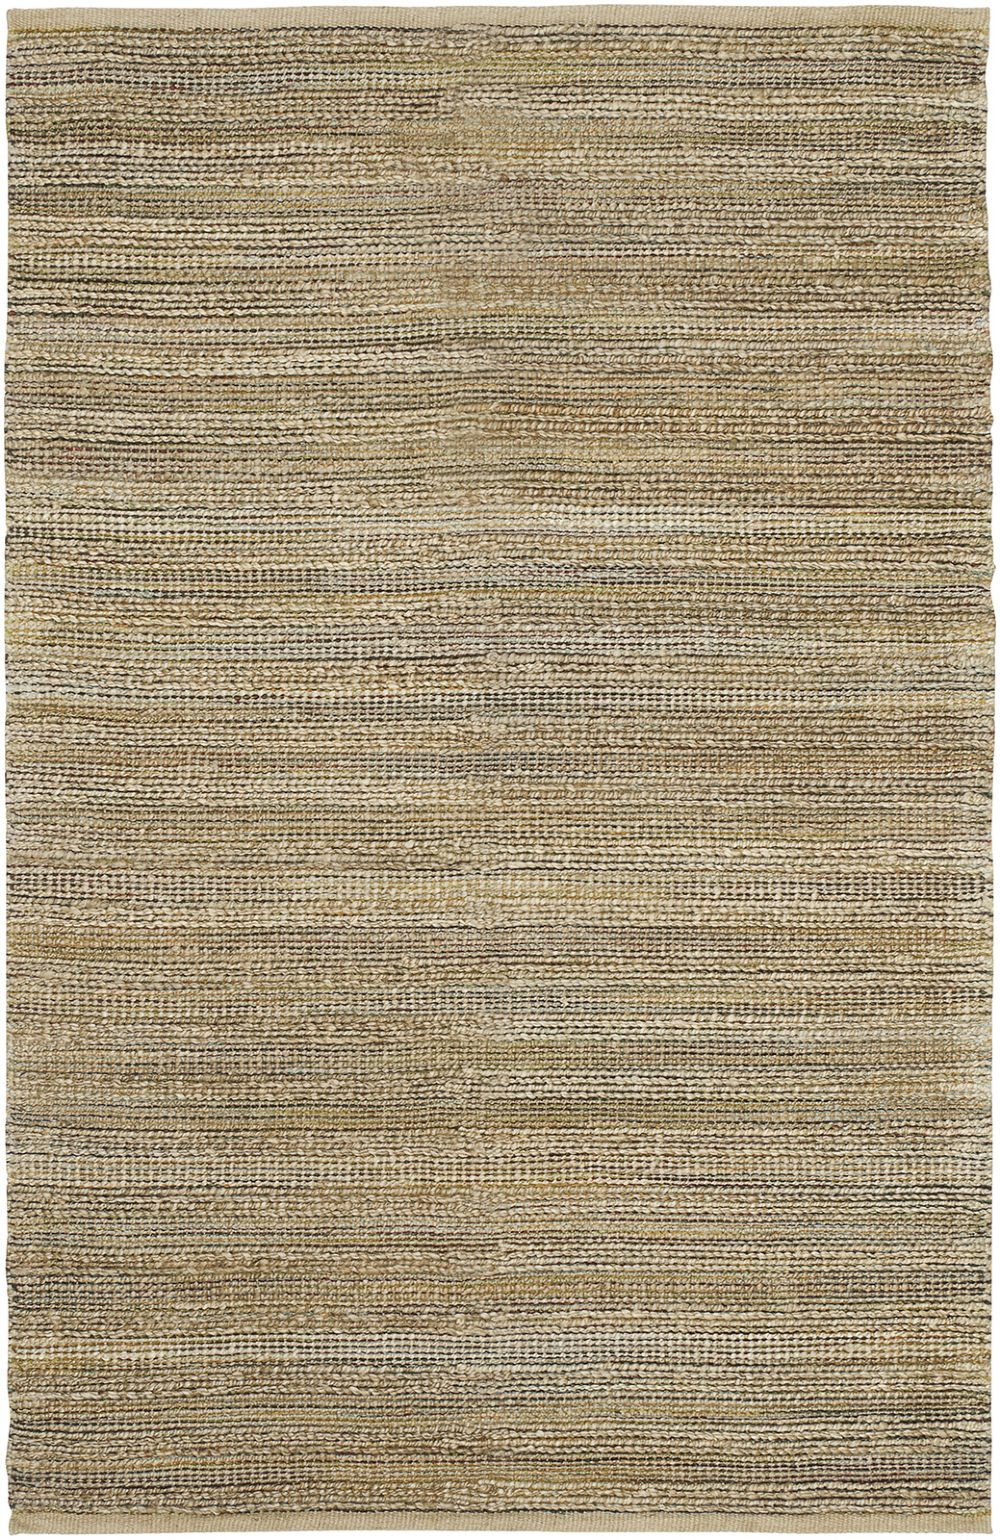 lr resources sonora natural fiber area rug collection